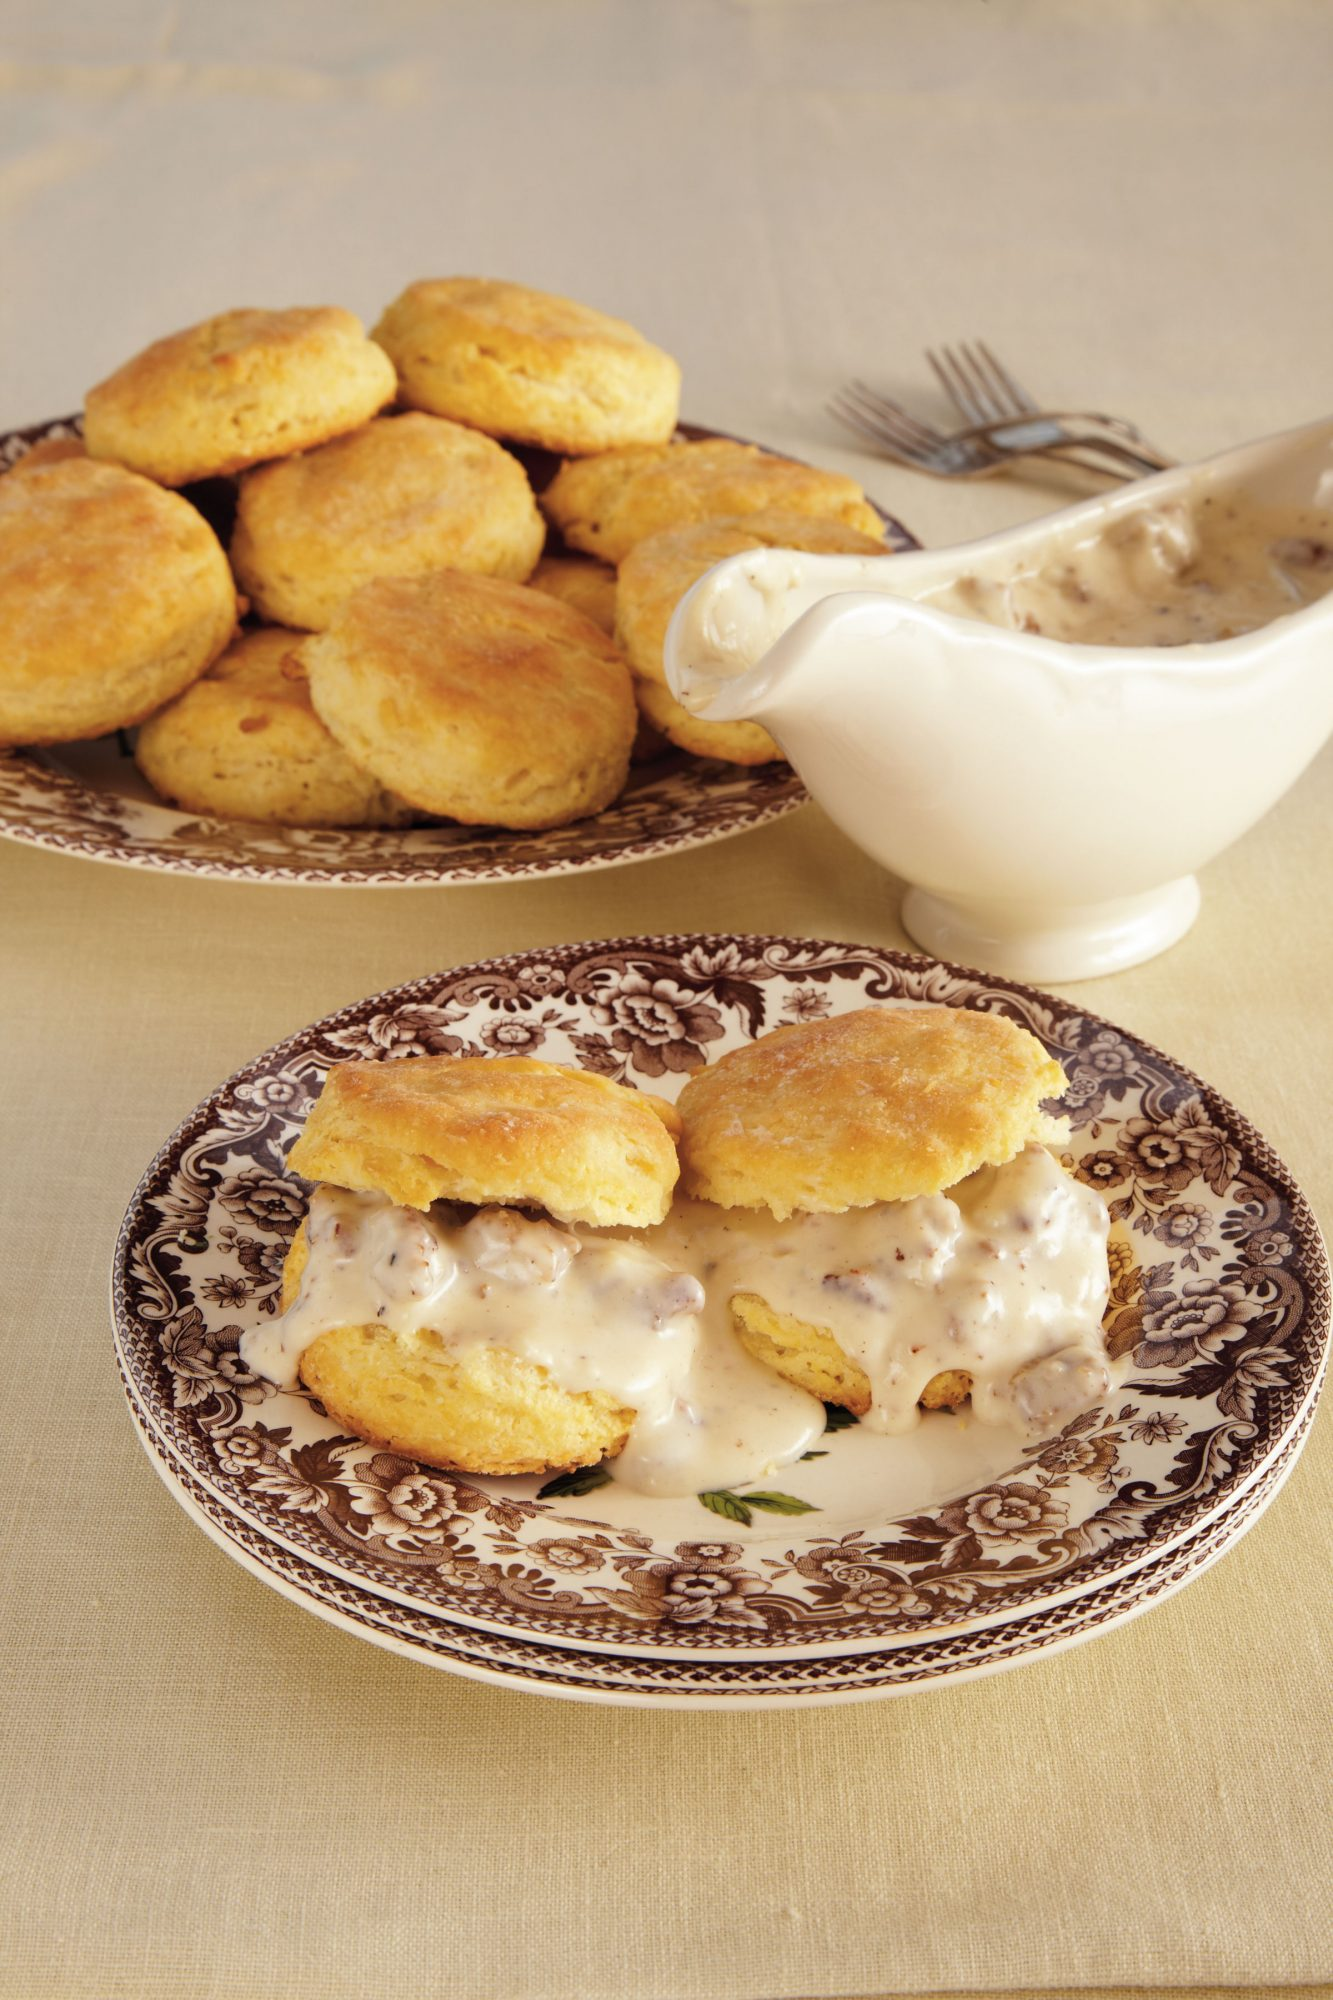 Sausage Gravy and Biscuits